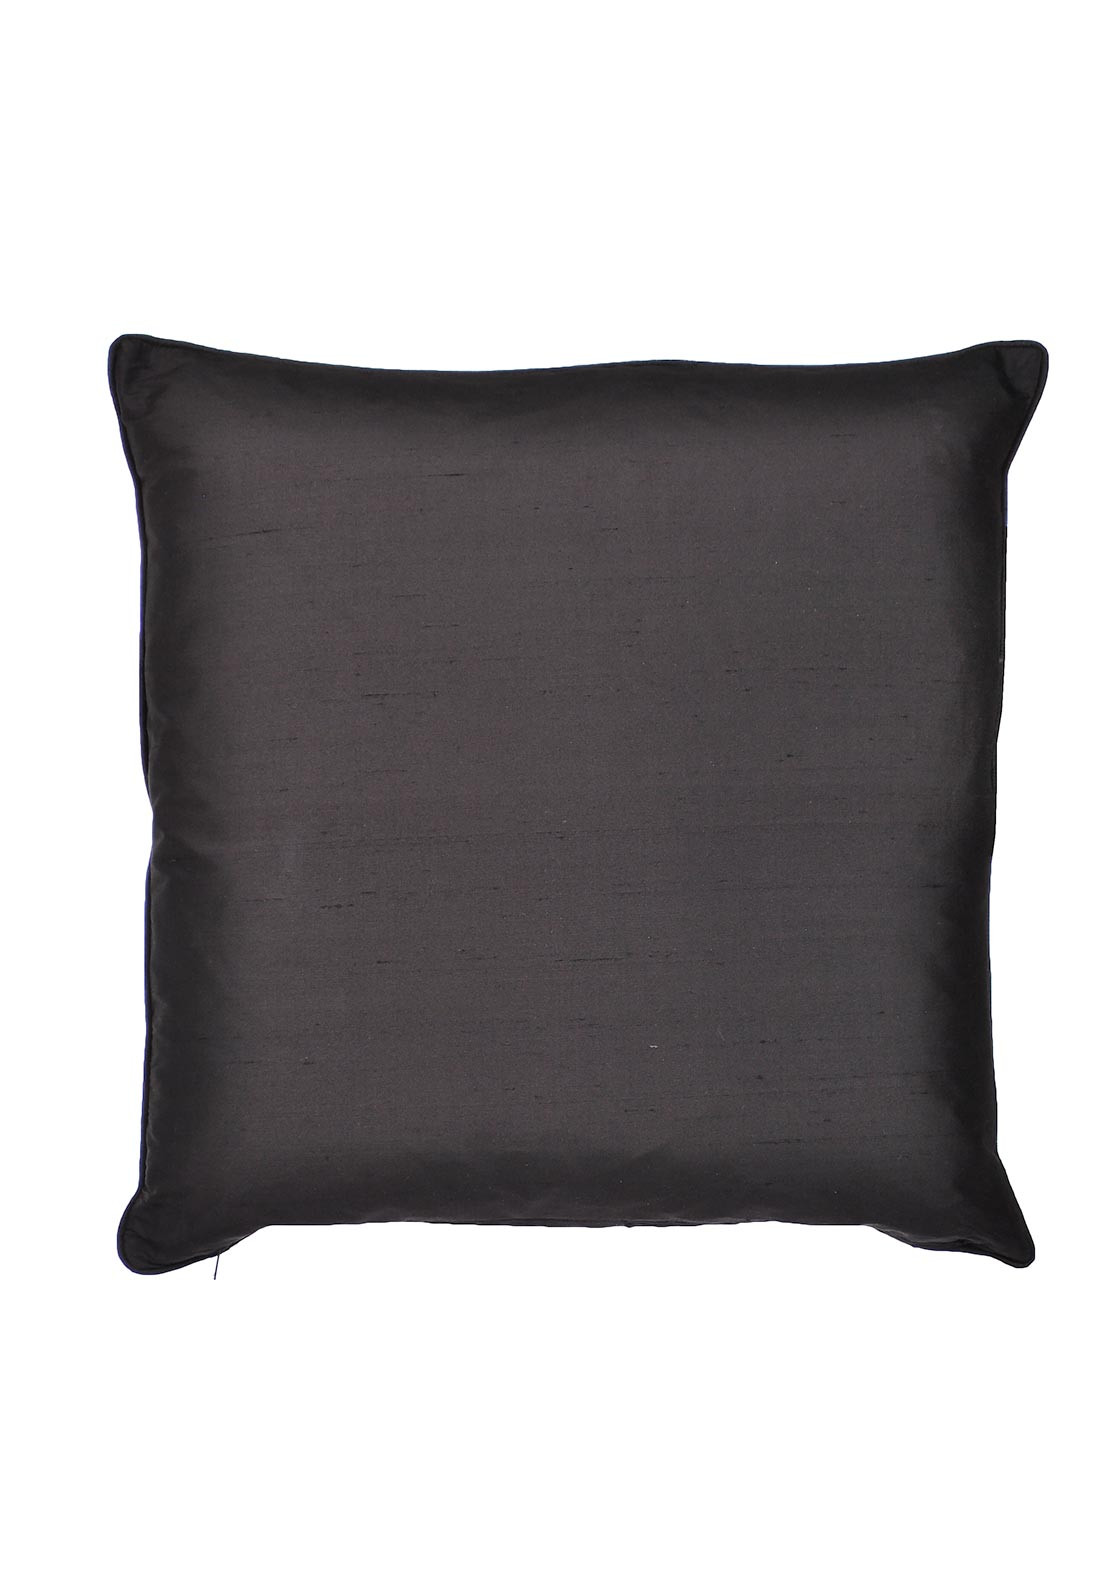 Scatterbox Silk Piped Square Cushion, Black